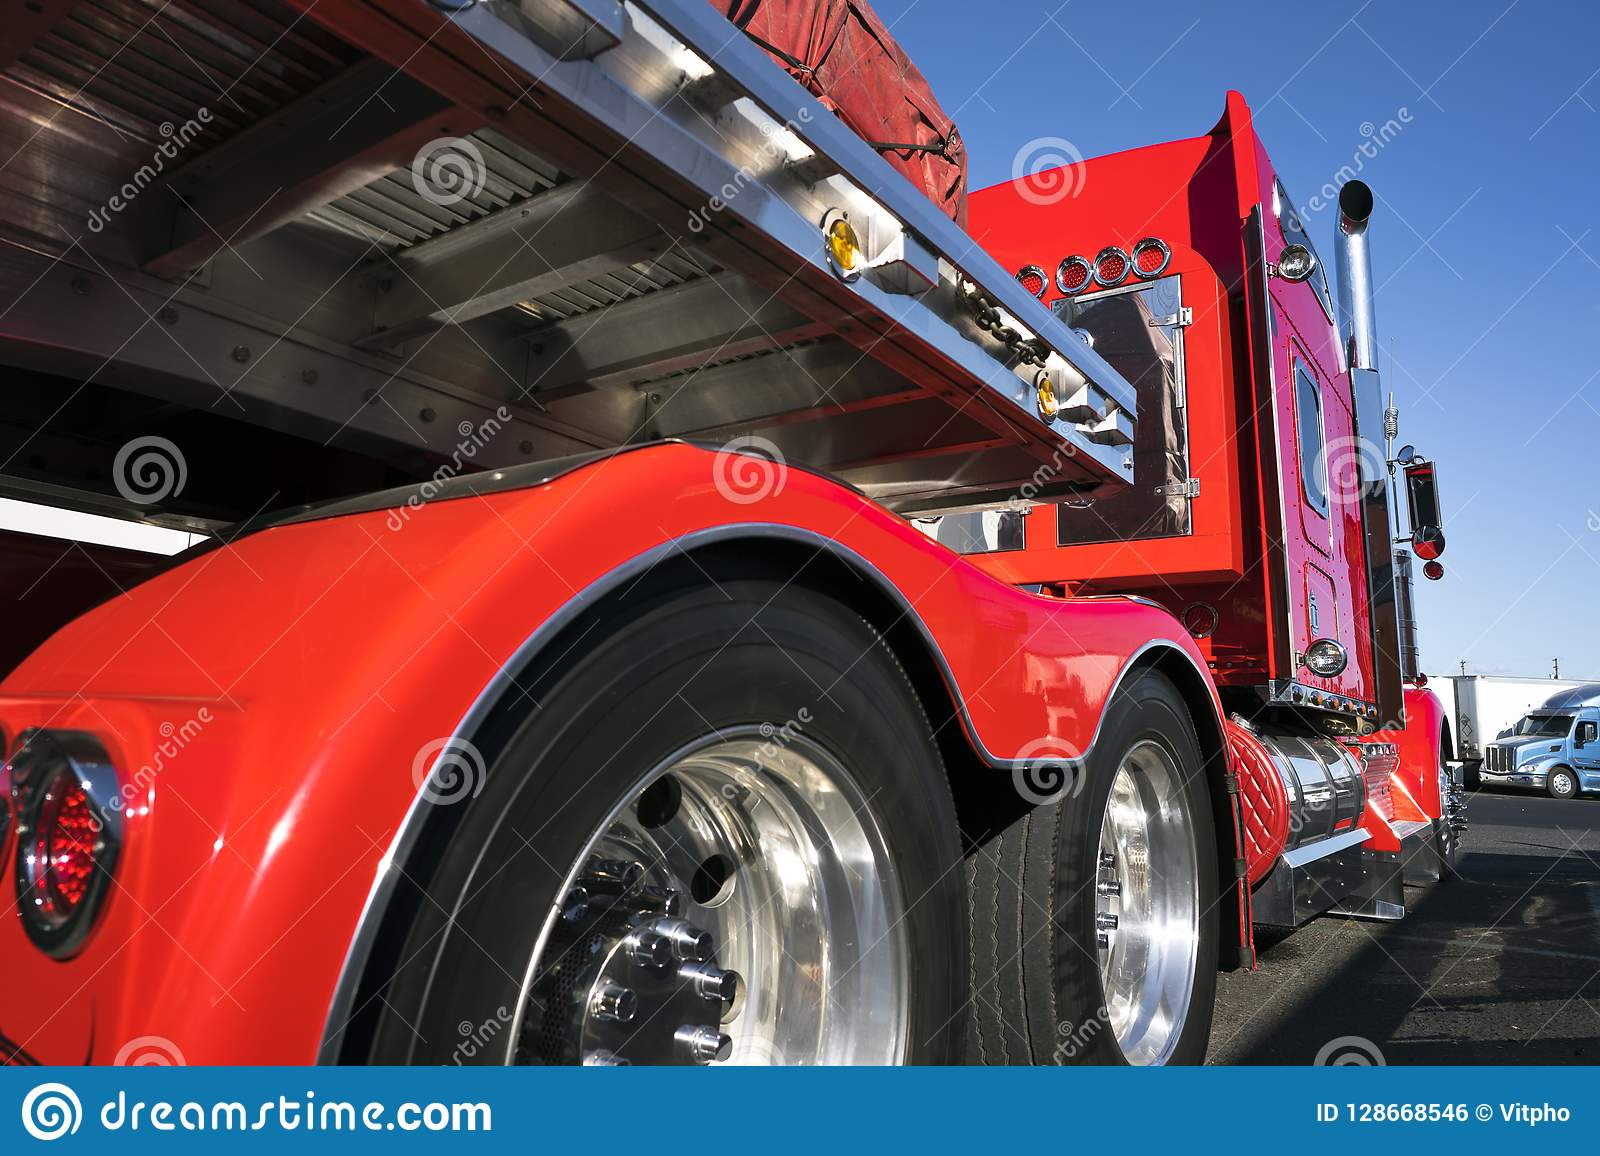 Red Big Rig Semi Truck With Alumnum Flat Bed Semi Trailer Standing For Rest On Truck Stop Stock Photo Image Of Conveyance Carrying 128668546